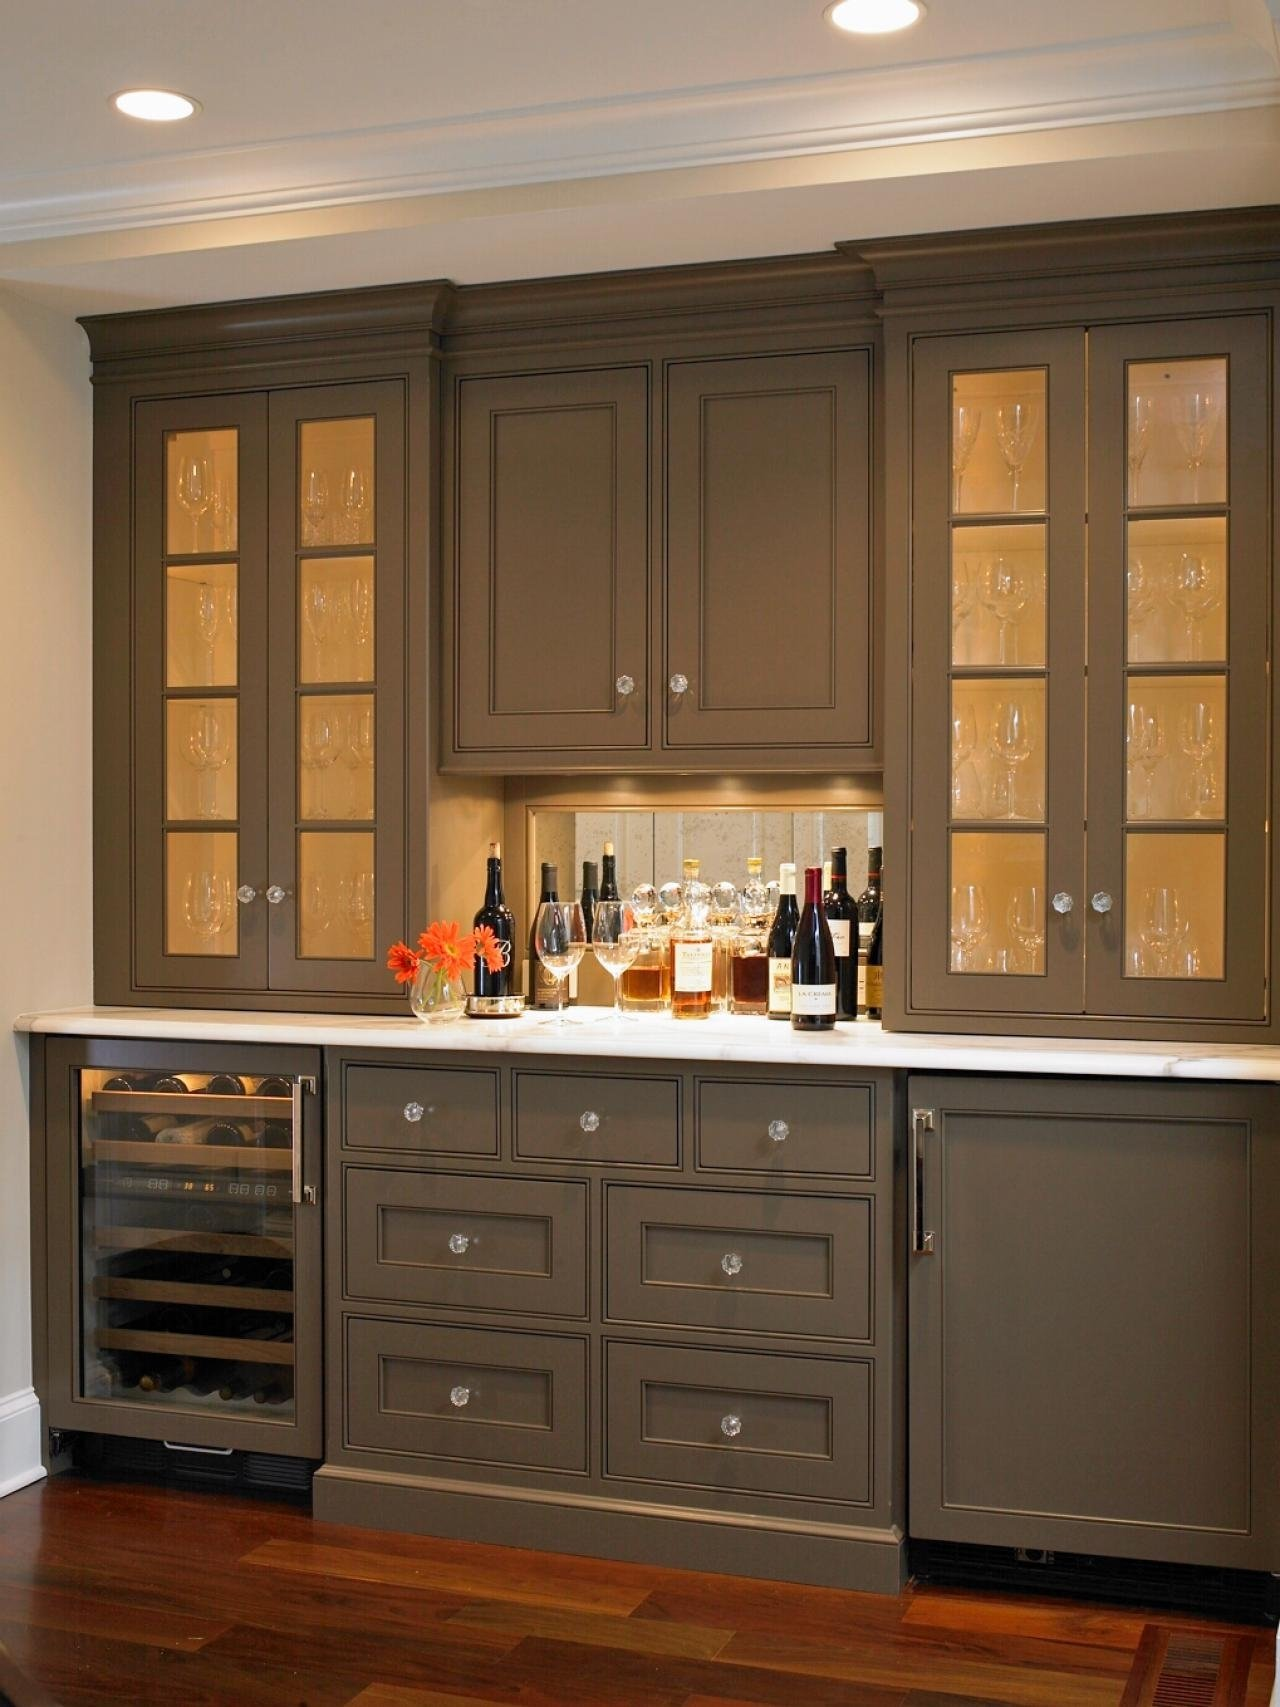 10 Lovely Kitchen Cabinet Paint Color Ideas best of kitchen cabinet colors hypermallapartments